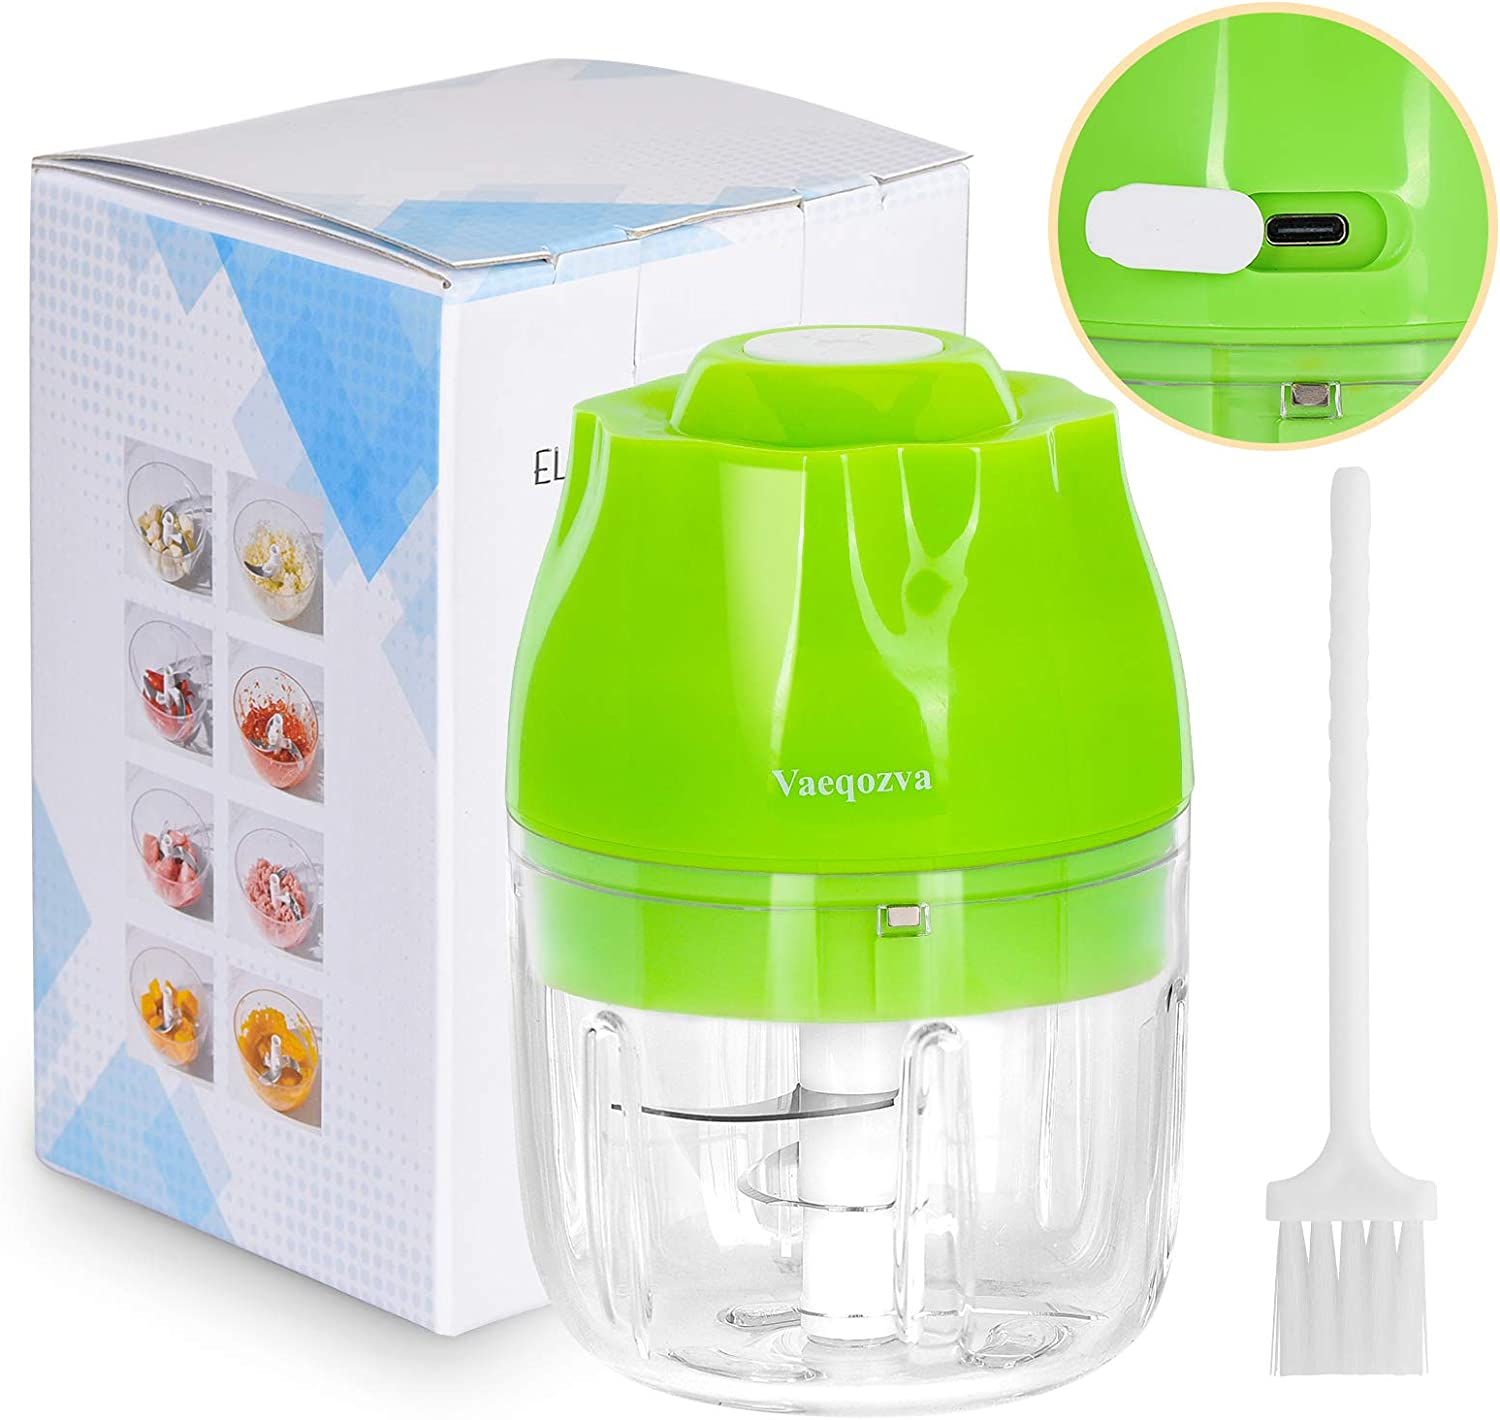 Electric Mini Food Garlic-Chopper Vaeqozva Portable Wireless Mincer Blender Mixer USB Rechargeable Food Processor for Garlic Baby Food Vegetable Meat Fruits Onions Puree 8.45oz, Green